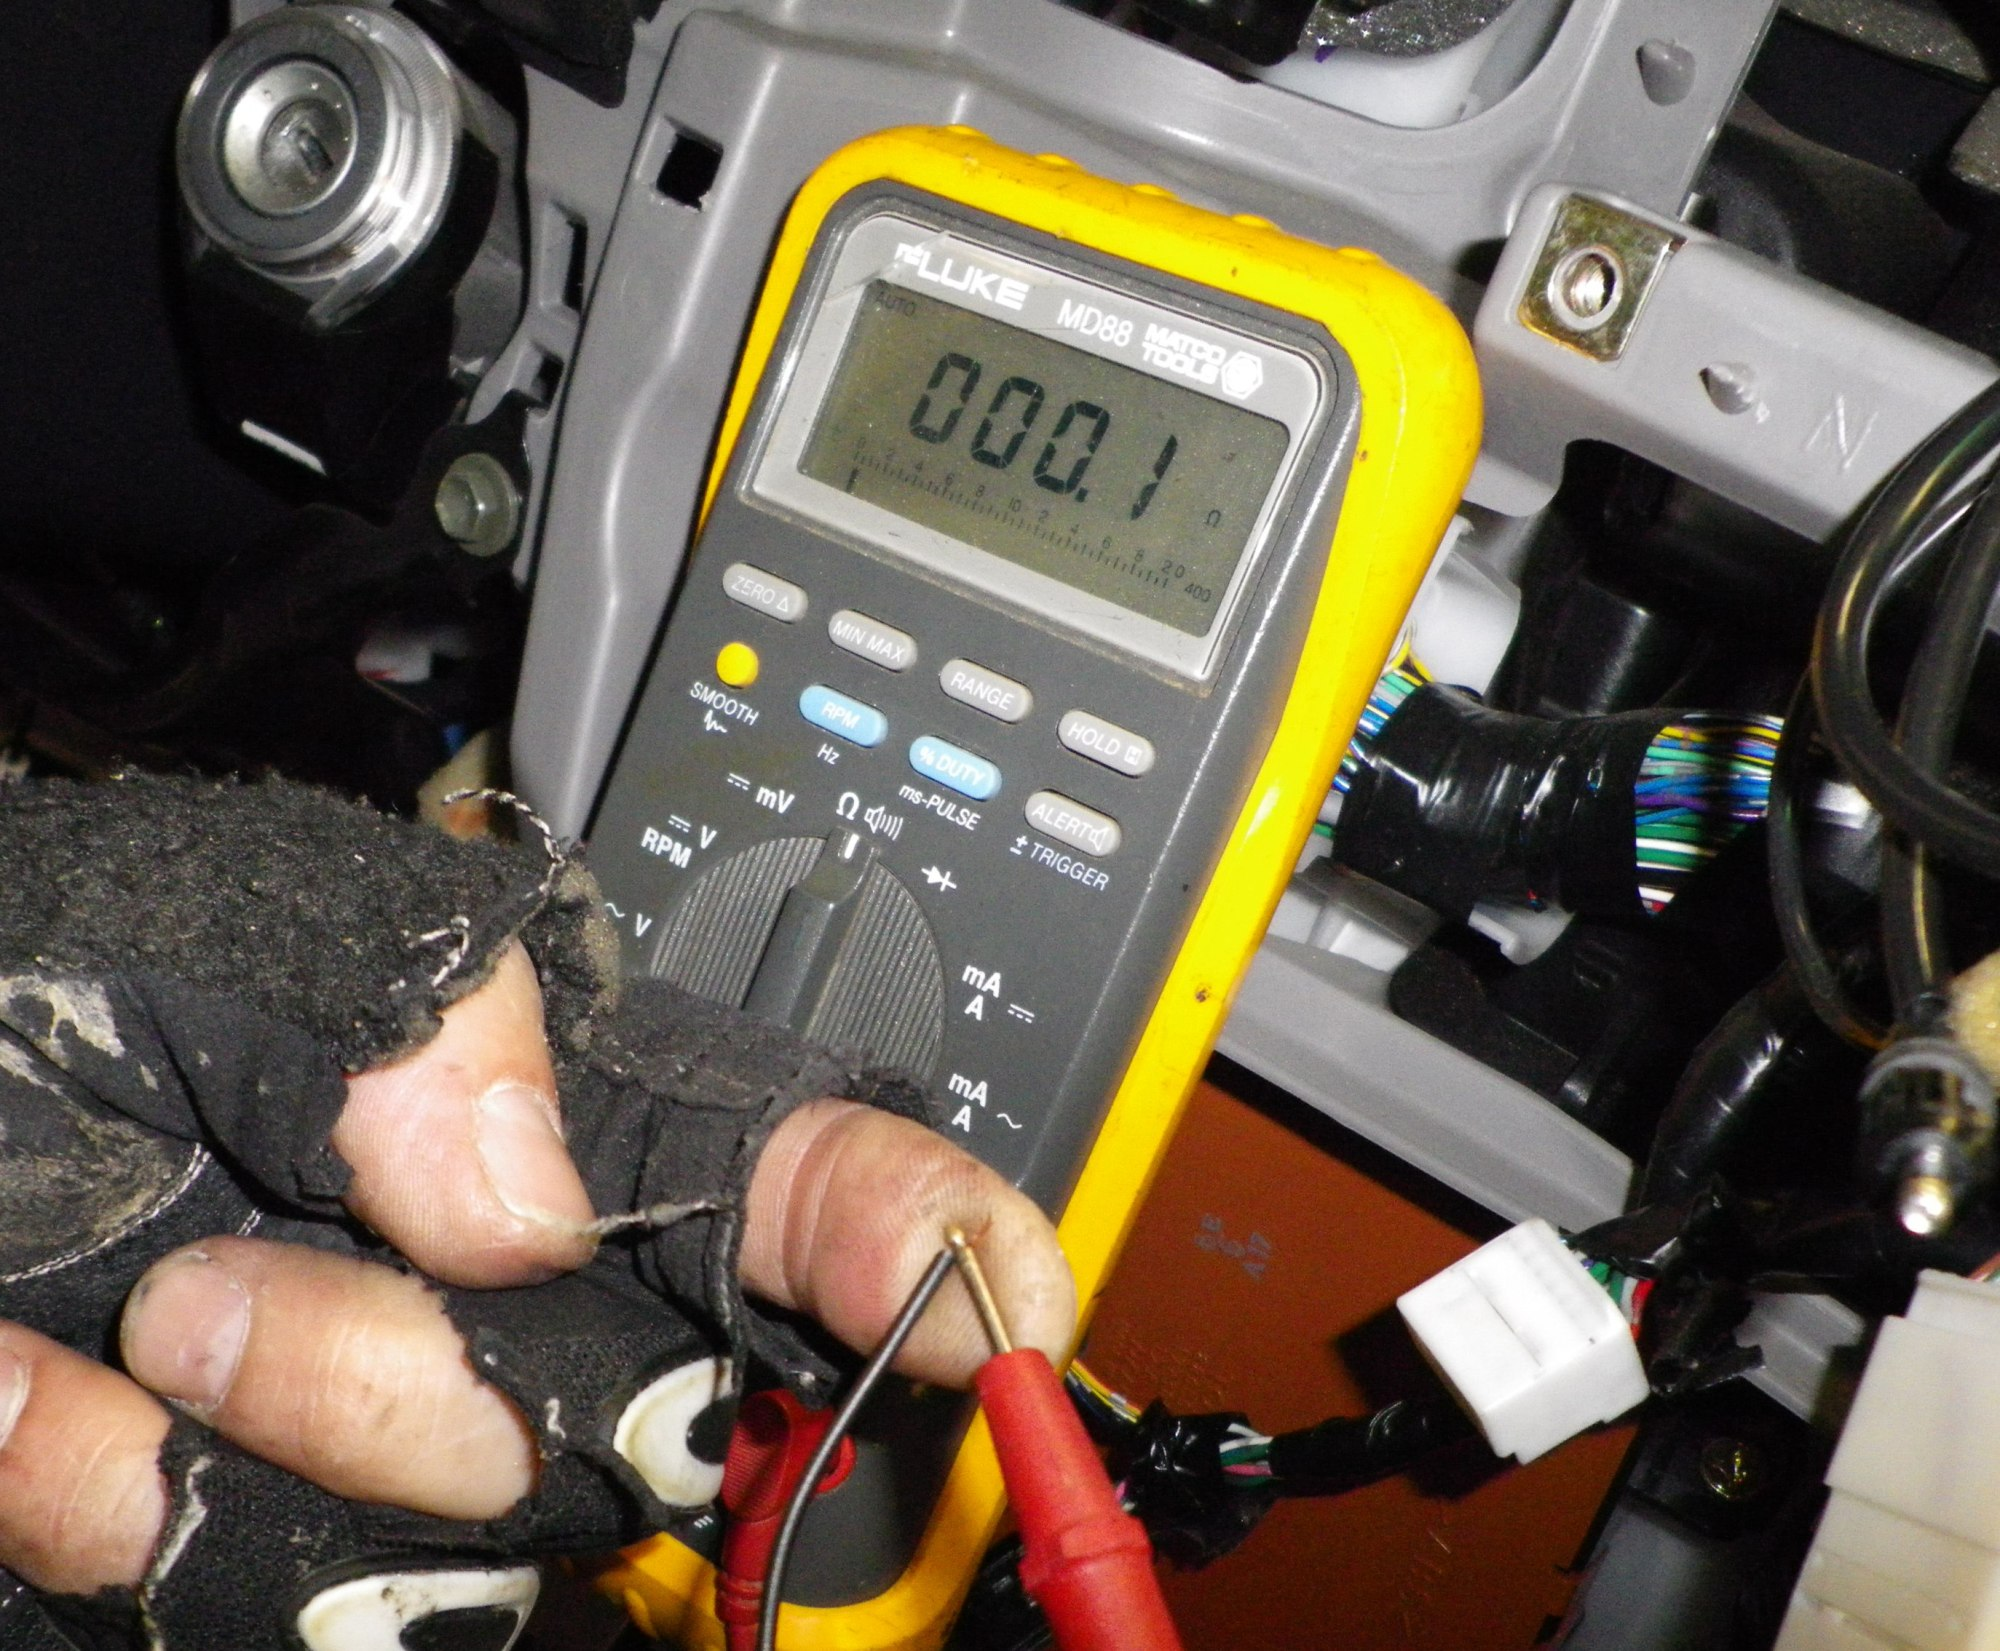 hight resolution of testing wires when your radio harness has been cut